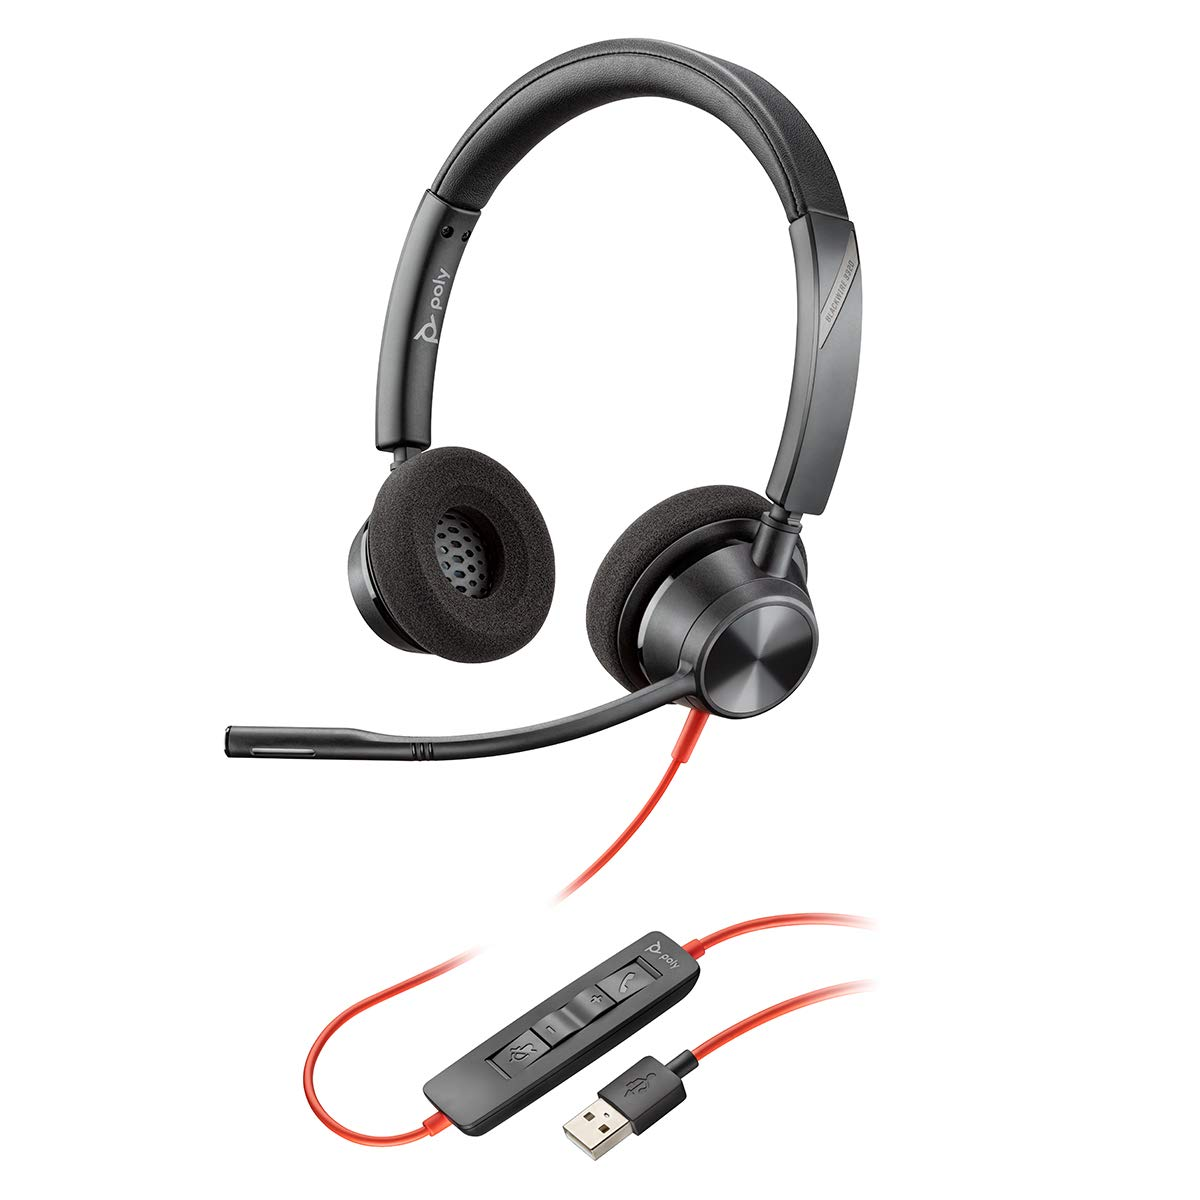 Plantronics Blackwire 3320 USB-A Headset